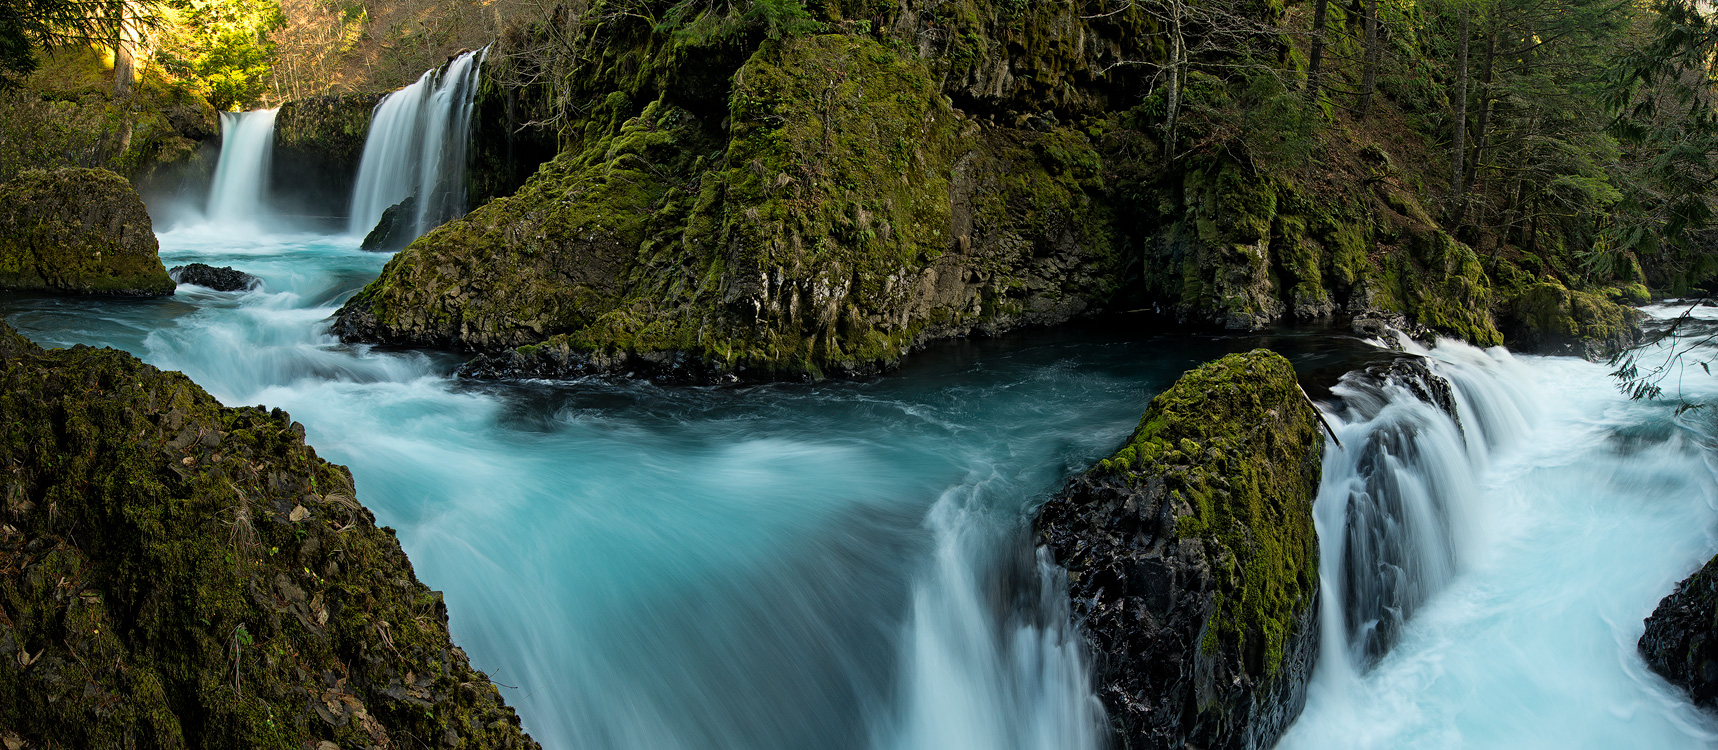 Spirit Falls, Washington, waterfalls, panoramic, glacier, aqua, teal, moss, rocks, spring, nature, natural, landscape, bernard chen, photo